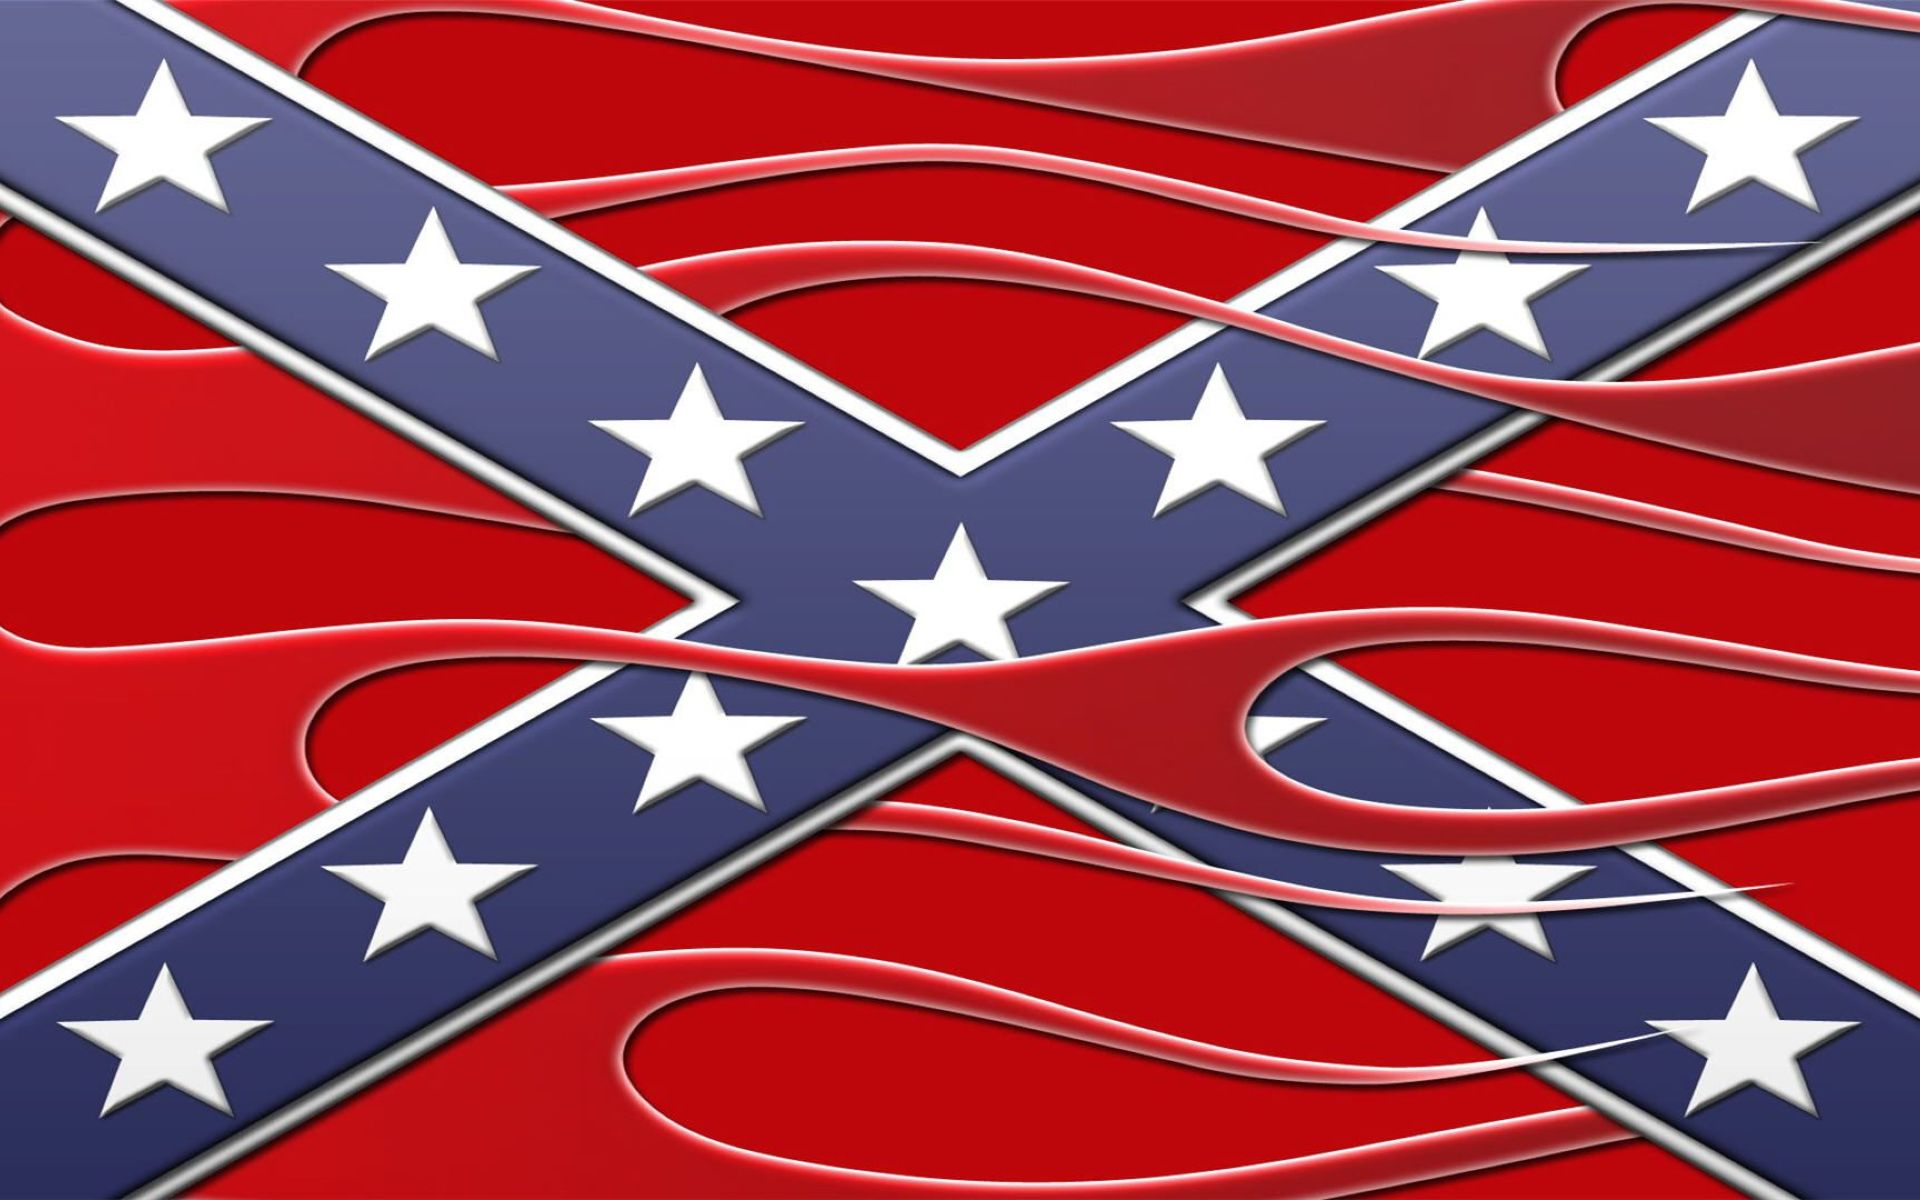 Confederate Flag Wallpaper Background 1920x1200